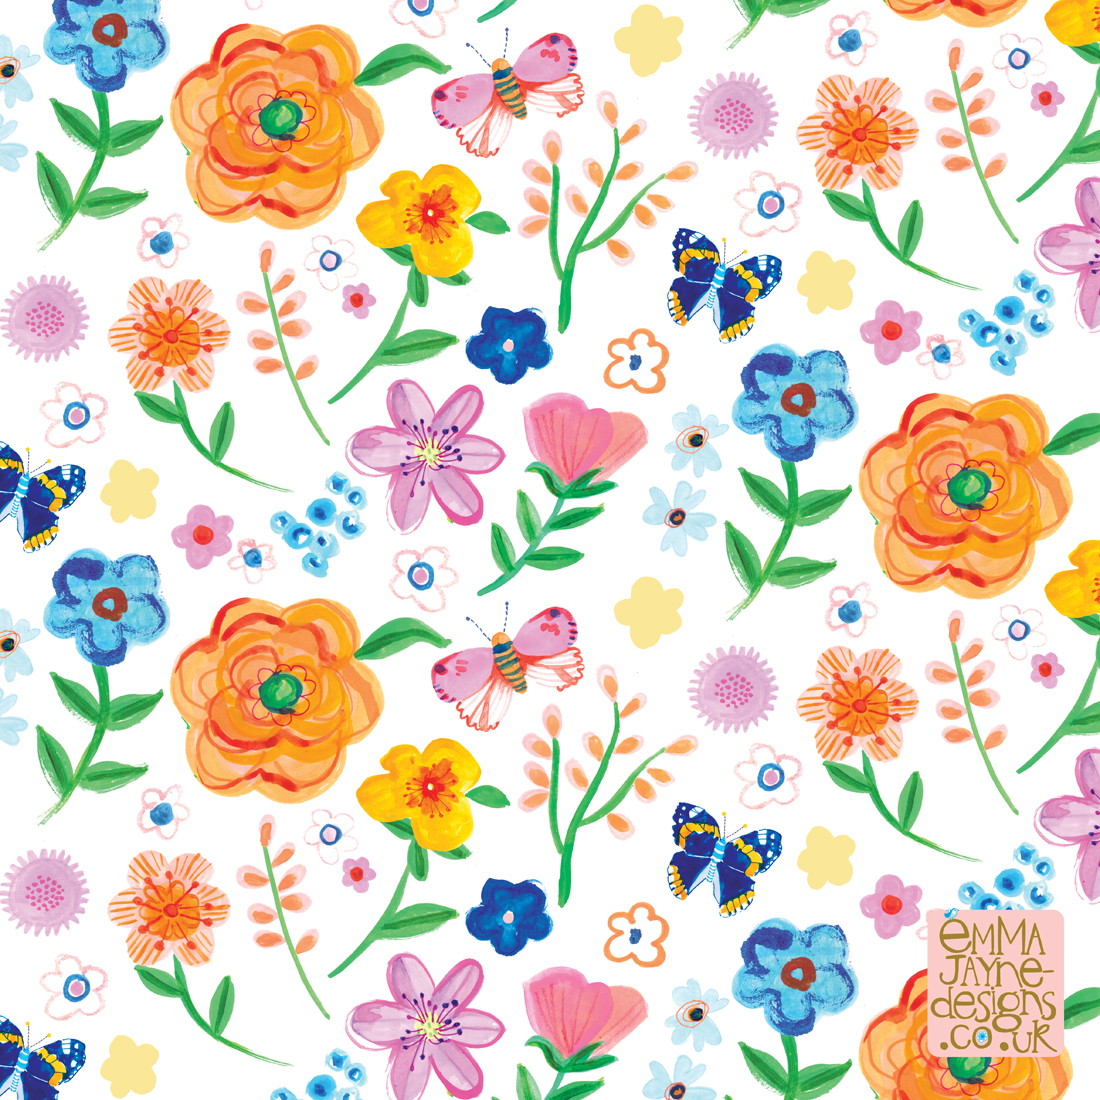 floral-pattern-designs-emmajayne-designs